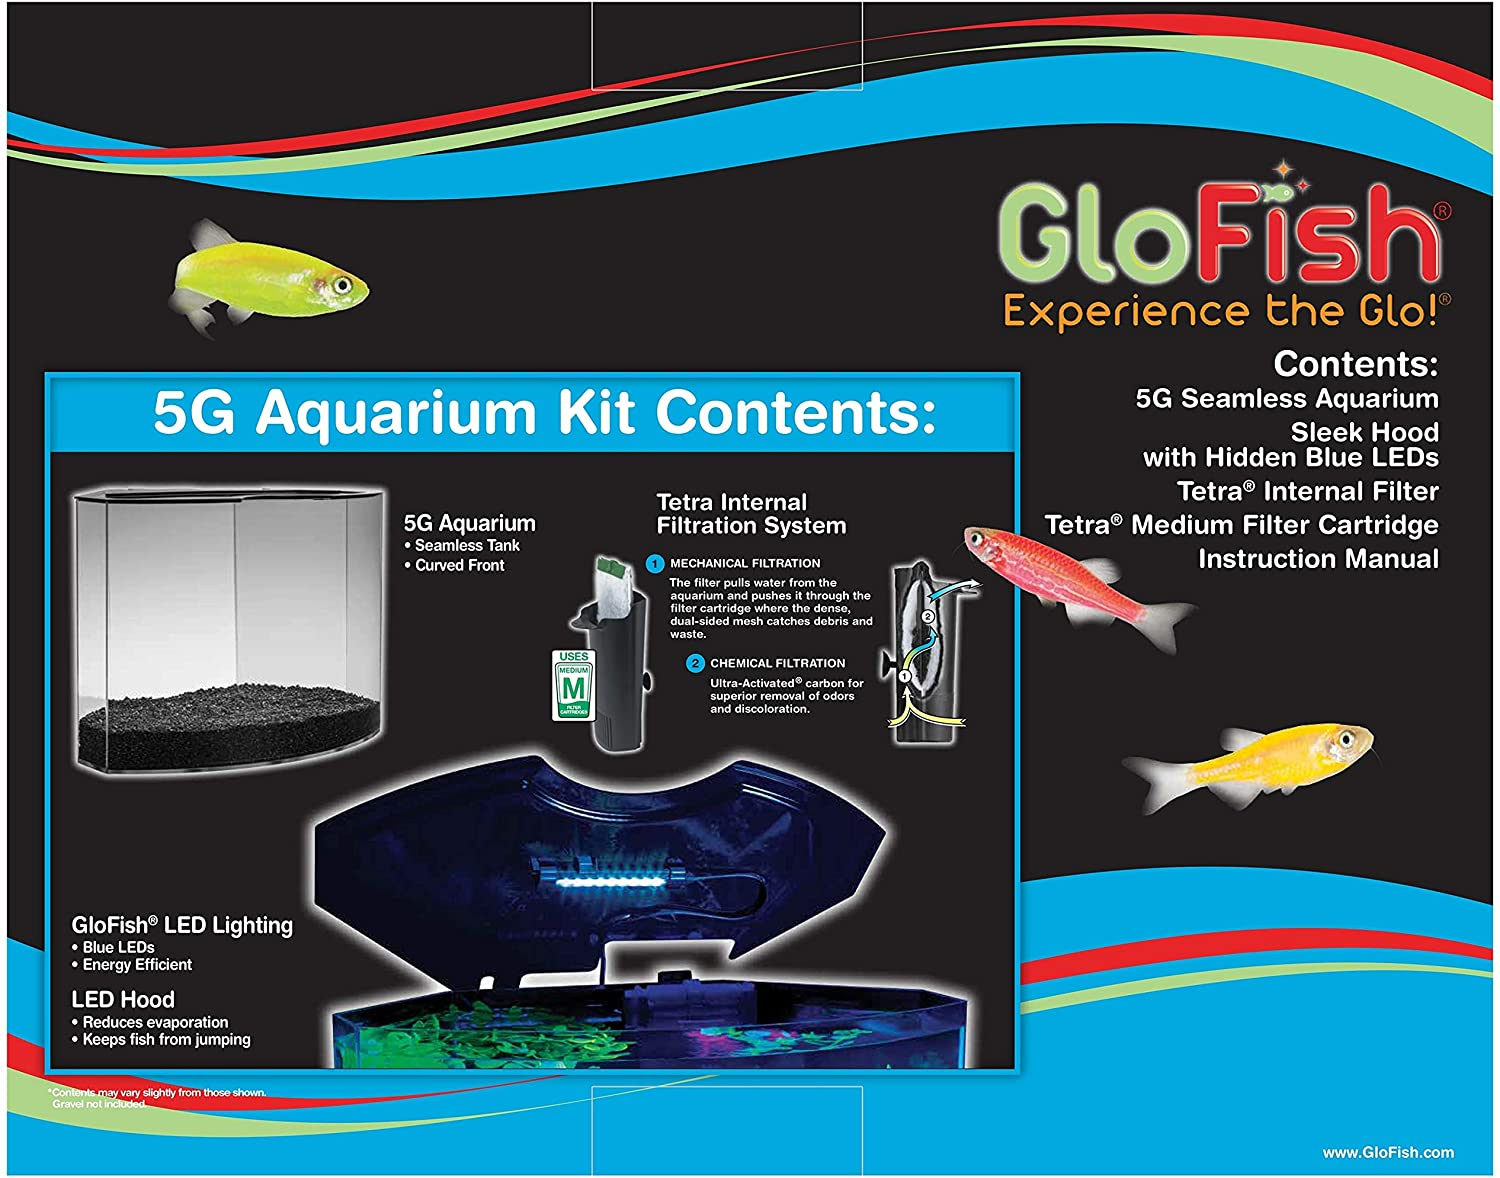 GloFish Glow In The Dark Fish tank 2